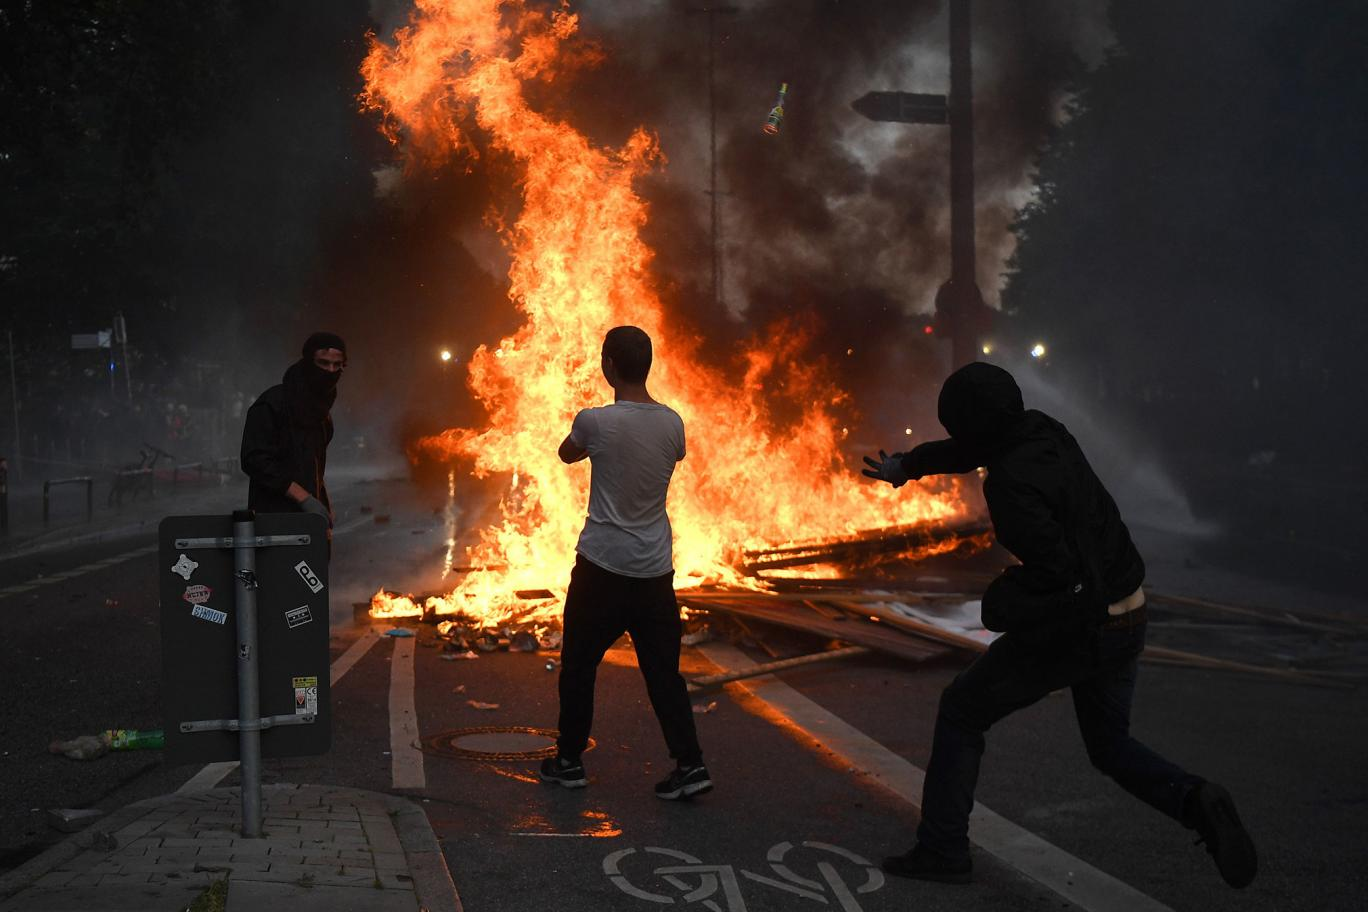 G20 Summit: Refugees call Hamburg rioters 'crazy' after third night of violence